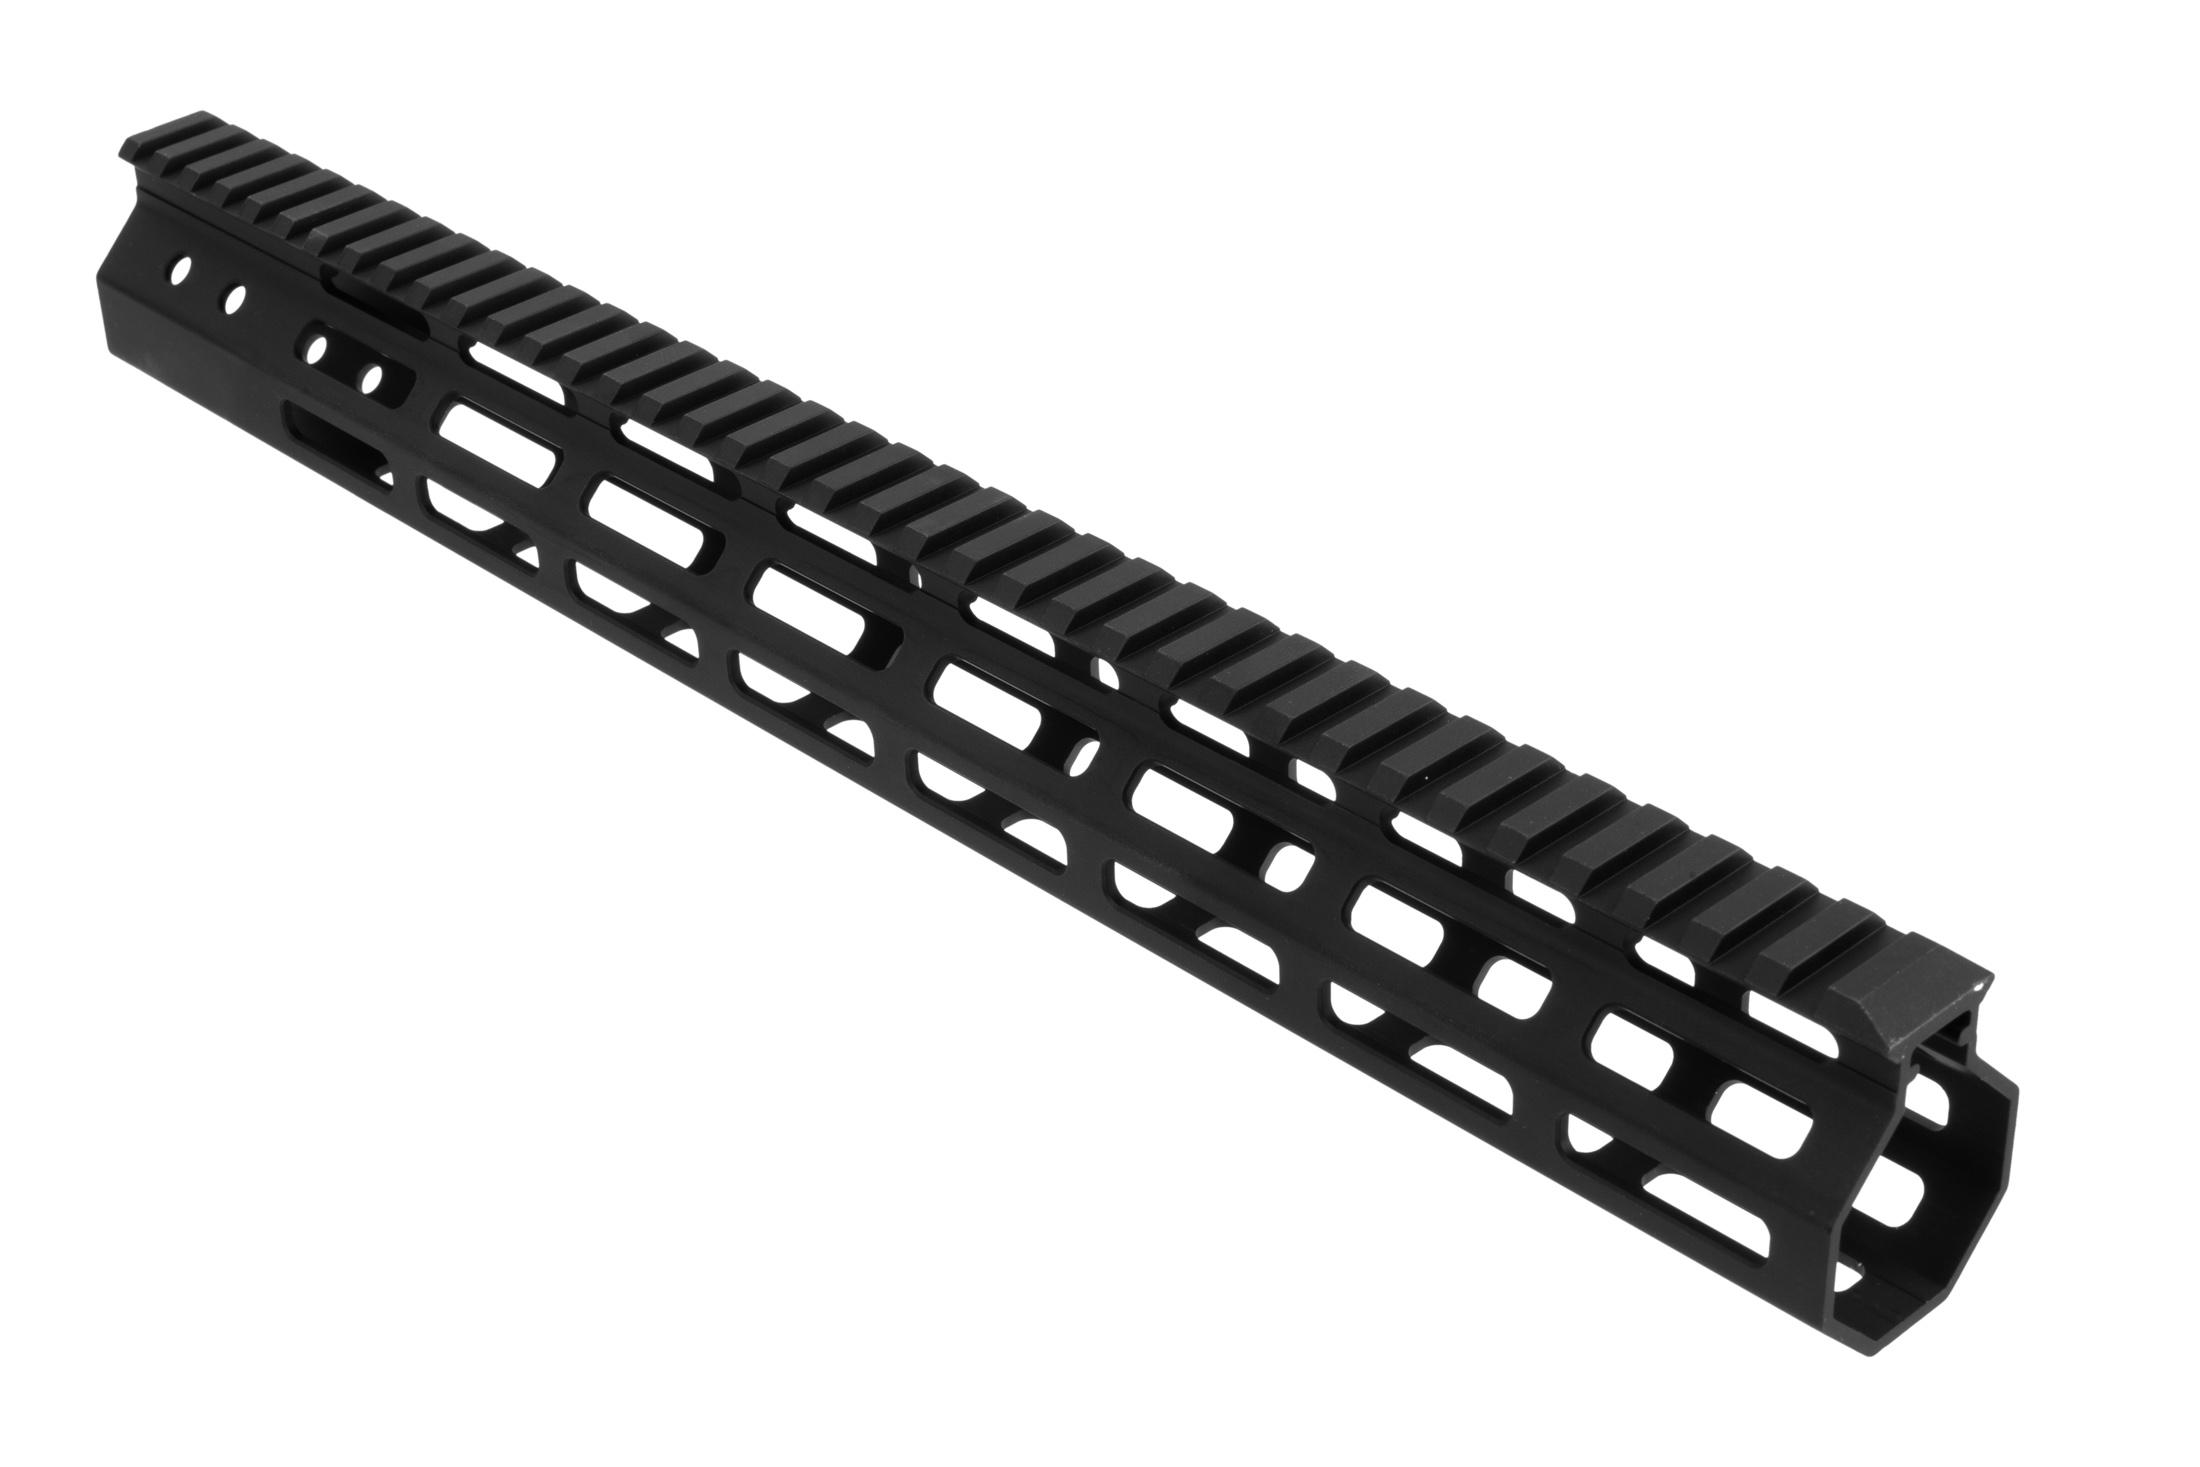 Foxtrot Mike Products Ultra Lite free float M-LOK handguard is a primary arms Exclusive